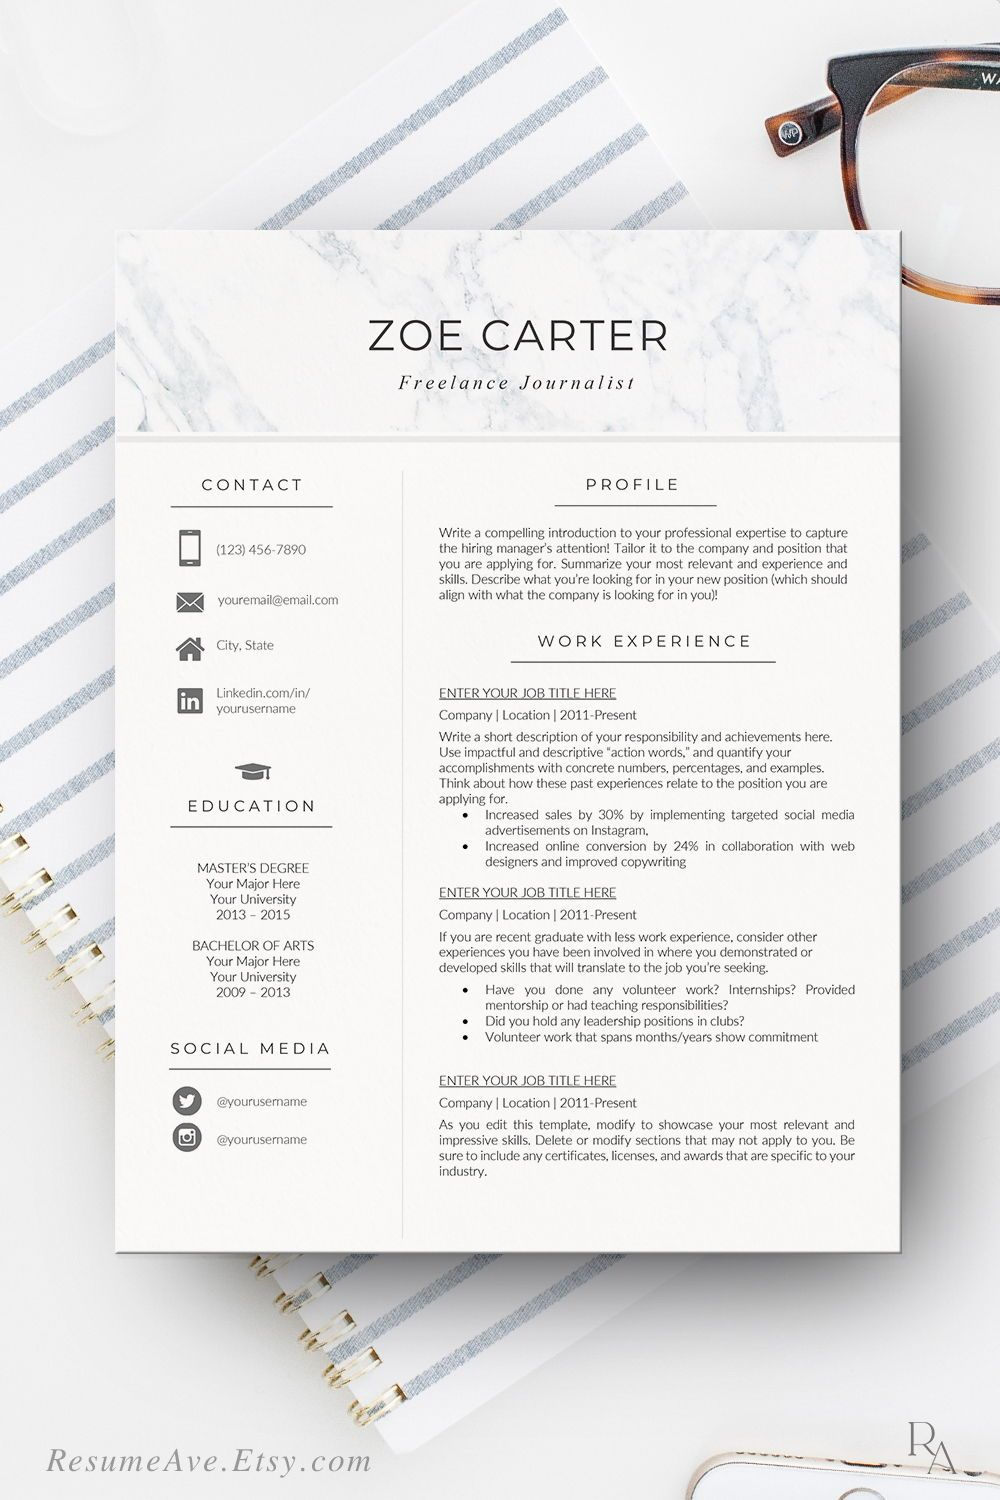 pin on resume templates the step modern builder using linkedin quantifying examples Resume The 24 Step Modern Resume